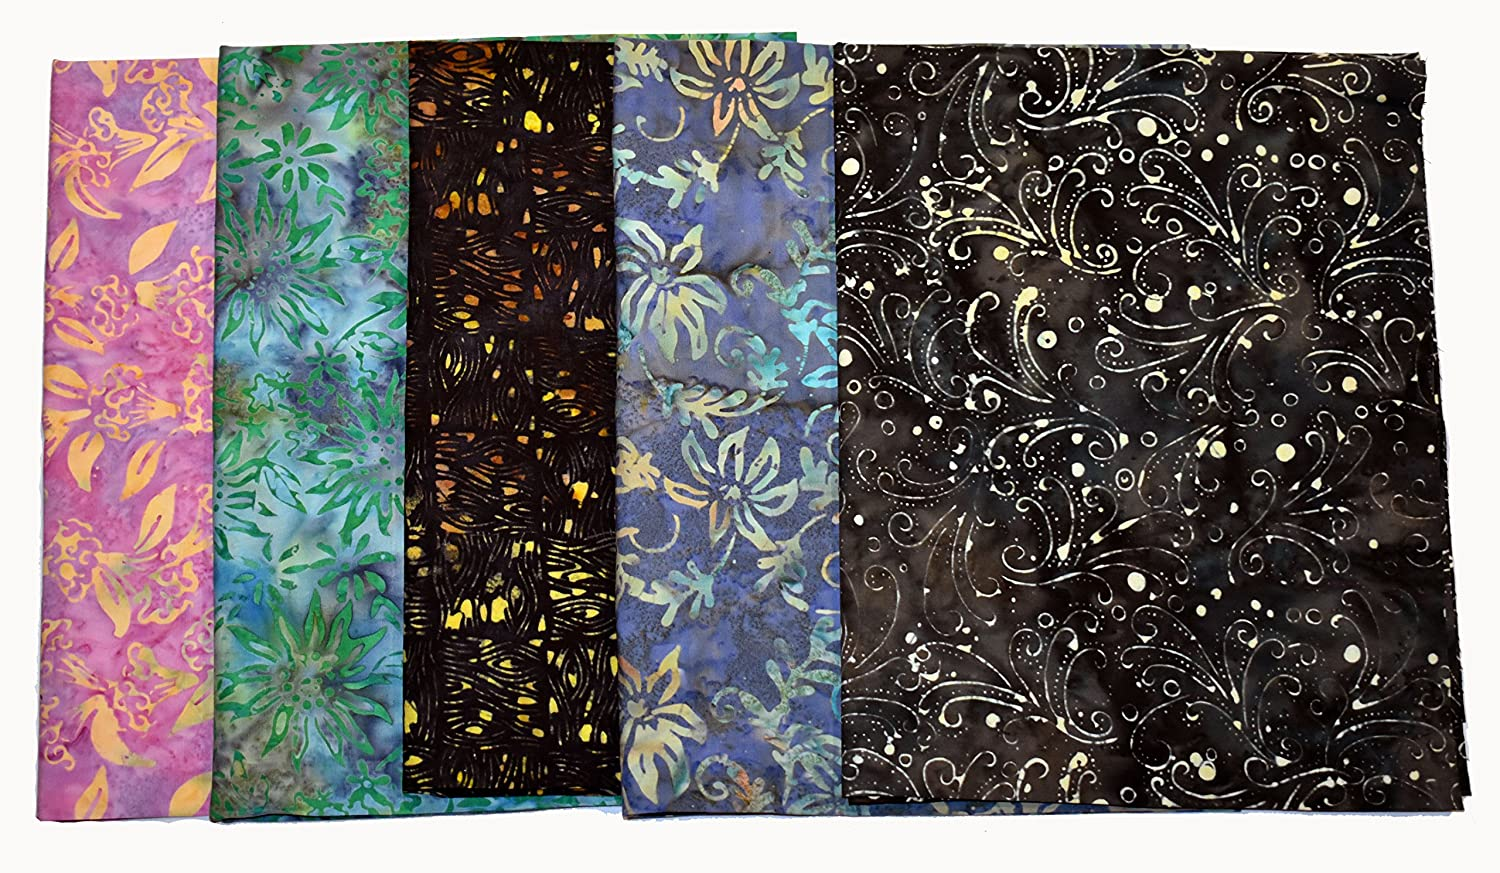 2.5 Yards Total Bali Batiks Premium Batik Half Yard Cuts Pack of 5